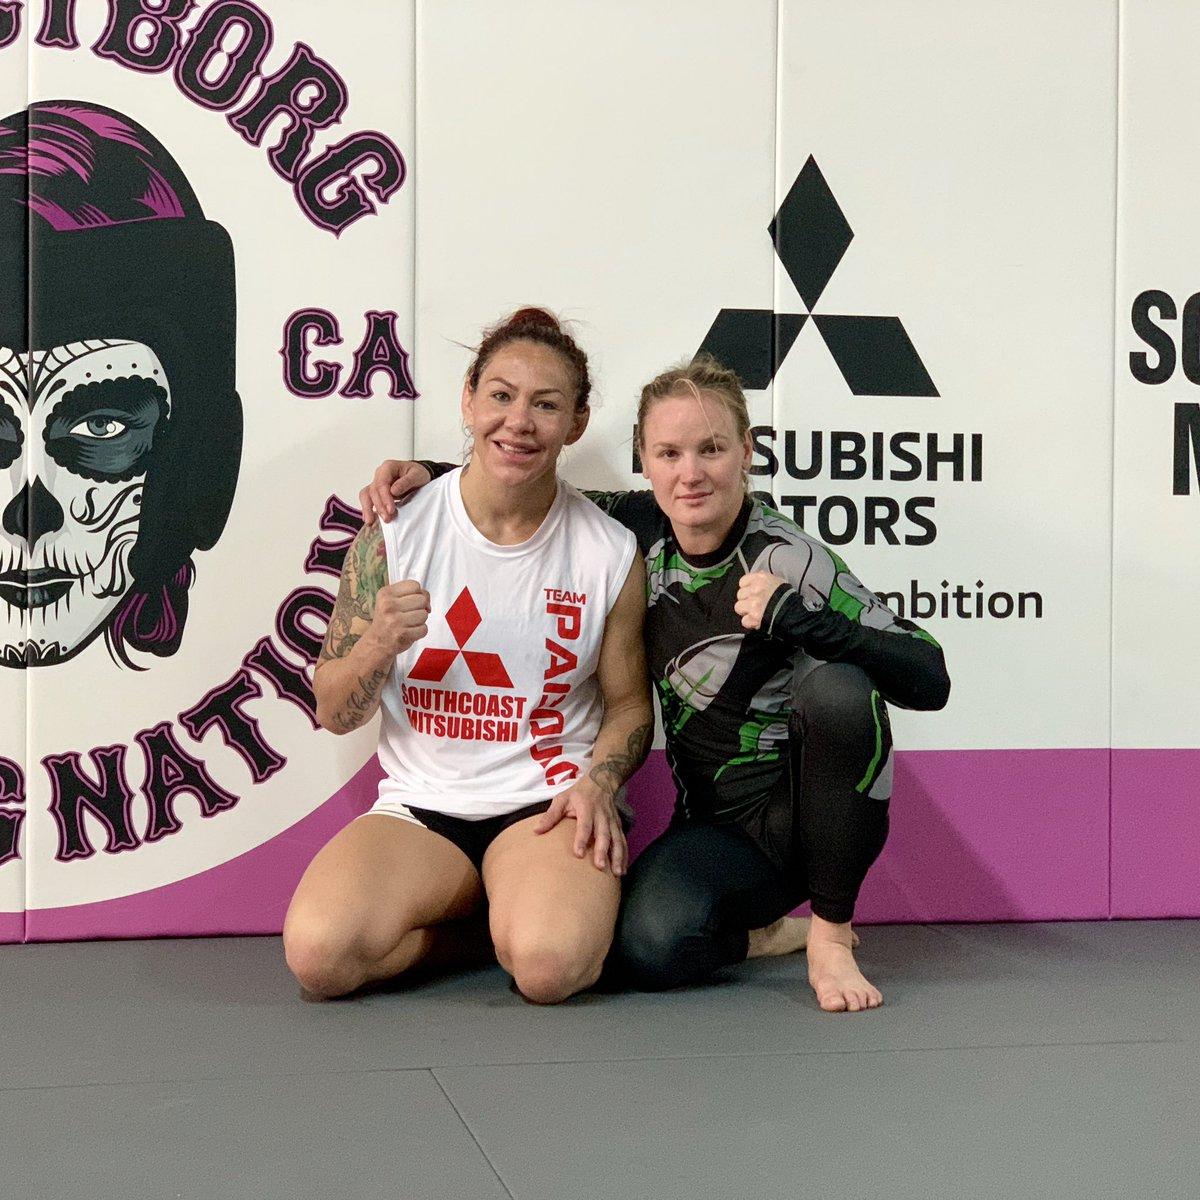 RT @BulletValentina: Good luck my friend @criscyborg tonight !!! #UFC232 https://t.co/WAJz3TkVW3